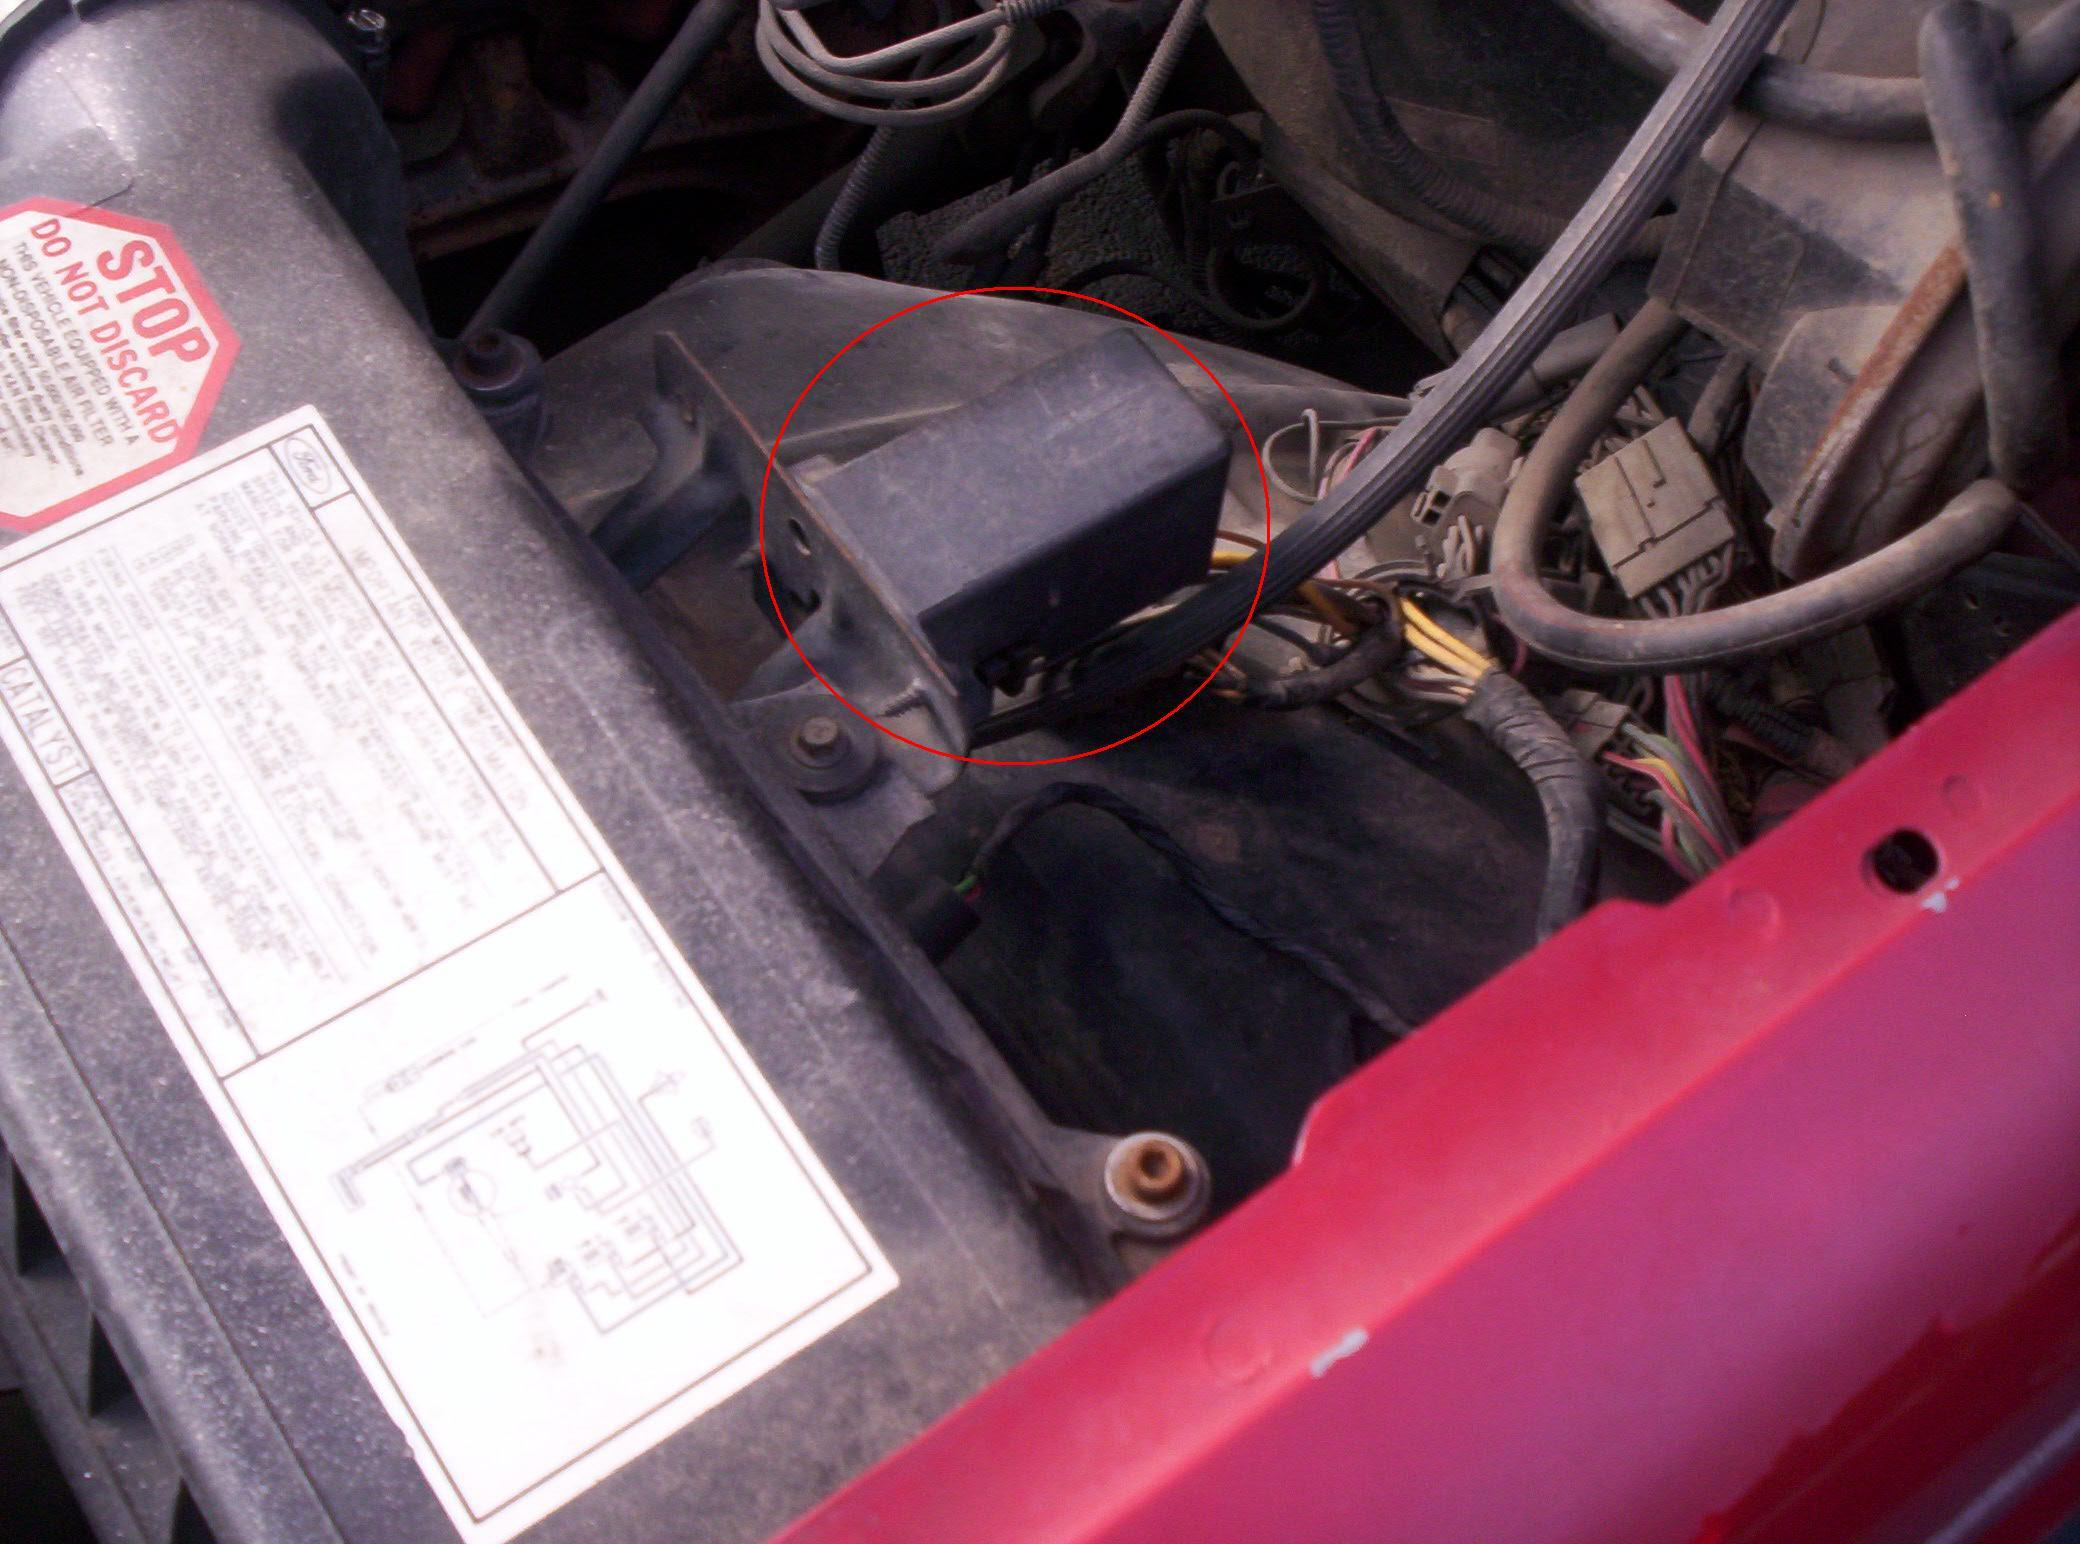 1989 Ford F250 Cranks But Will Not Start Replaced The Fuel 1988 F 250 7 3 Coolant Temp Sensor Also Pump Relay Can Be Manually Activated To Test And By Grounding A Wire At Eec Connector Is Located